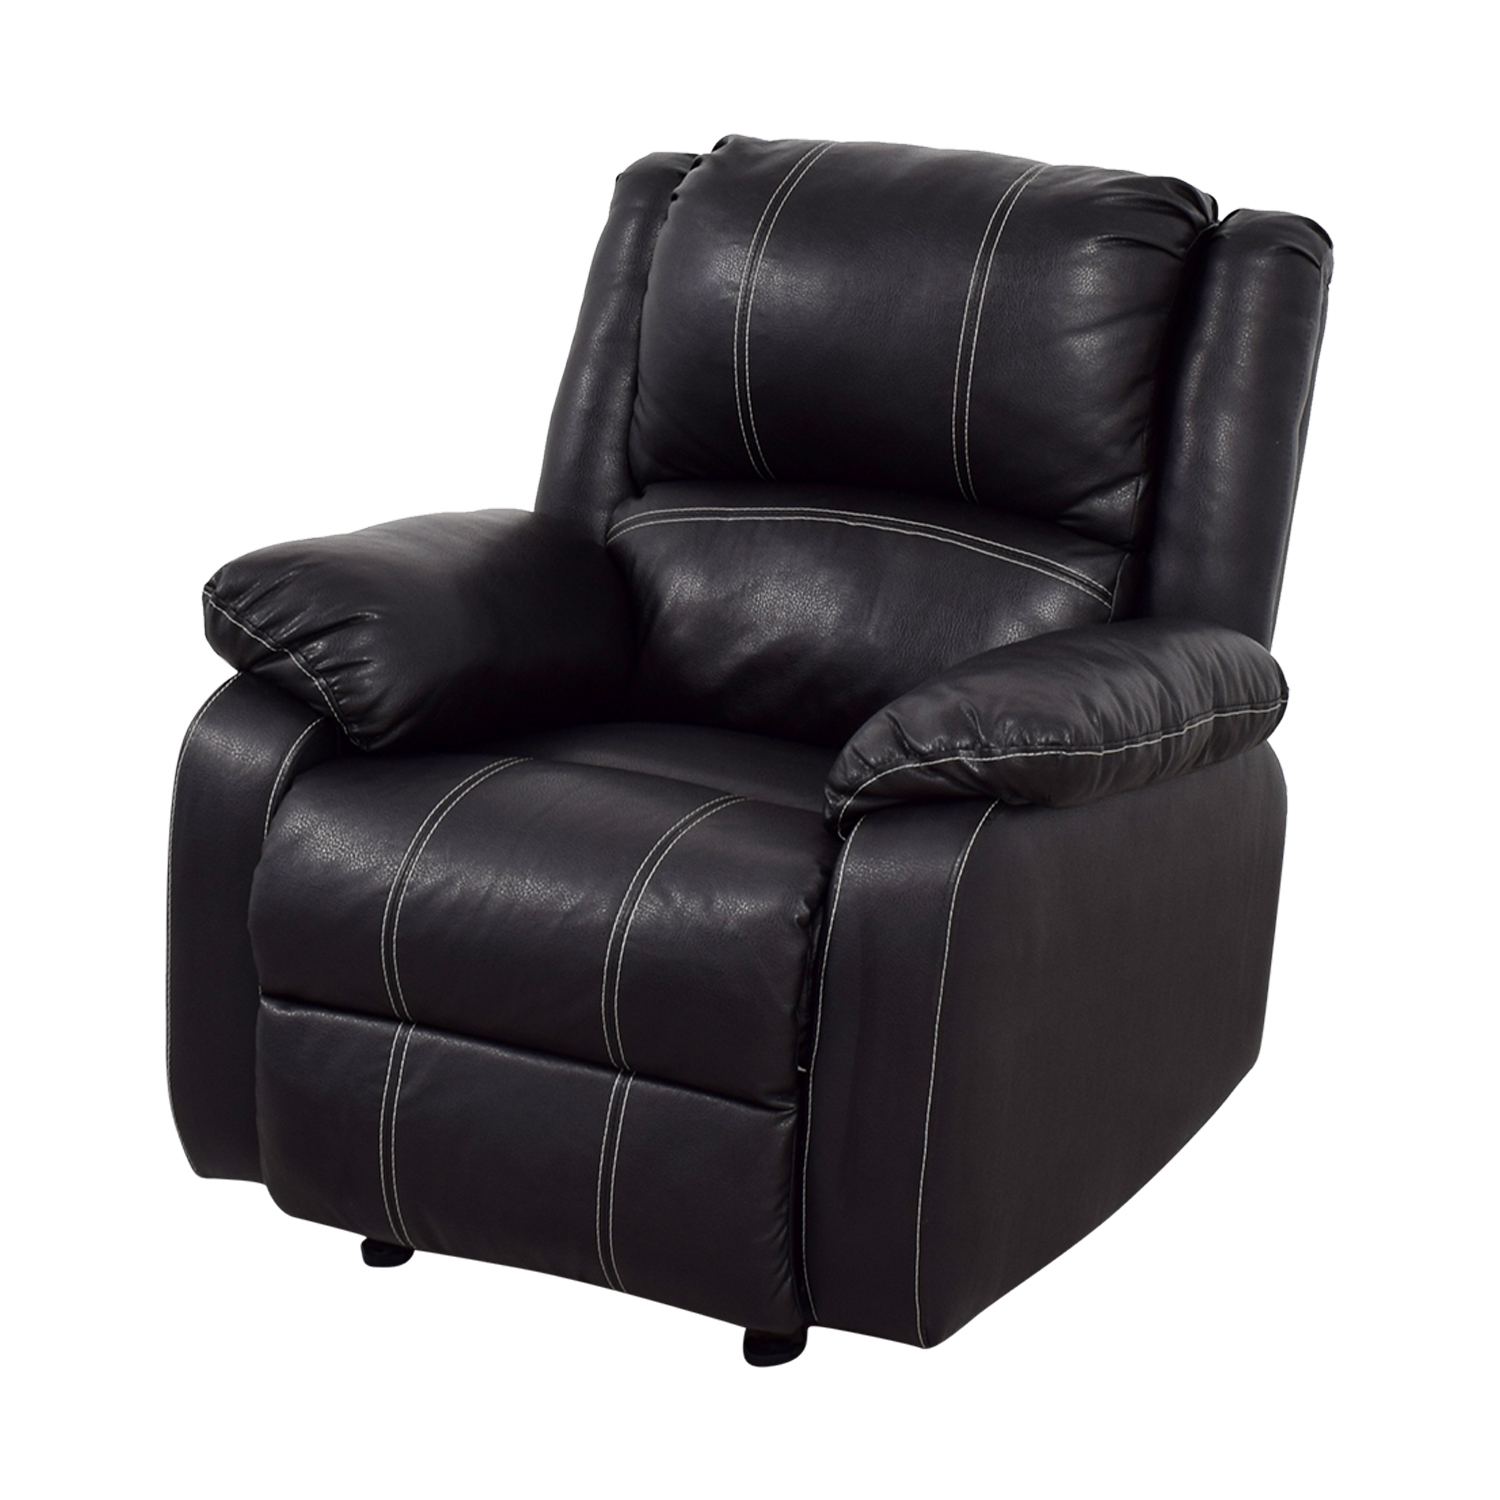 Acme Black Leather Recliner / Chairs